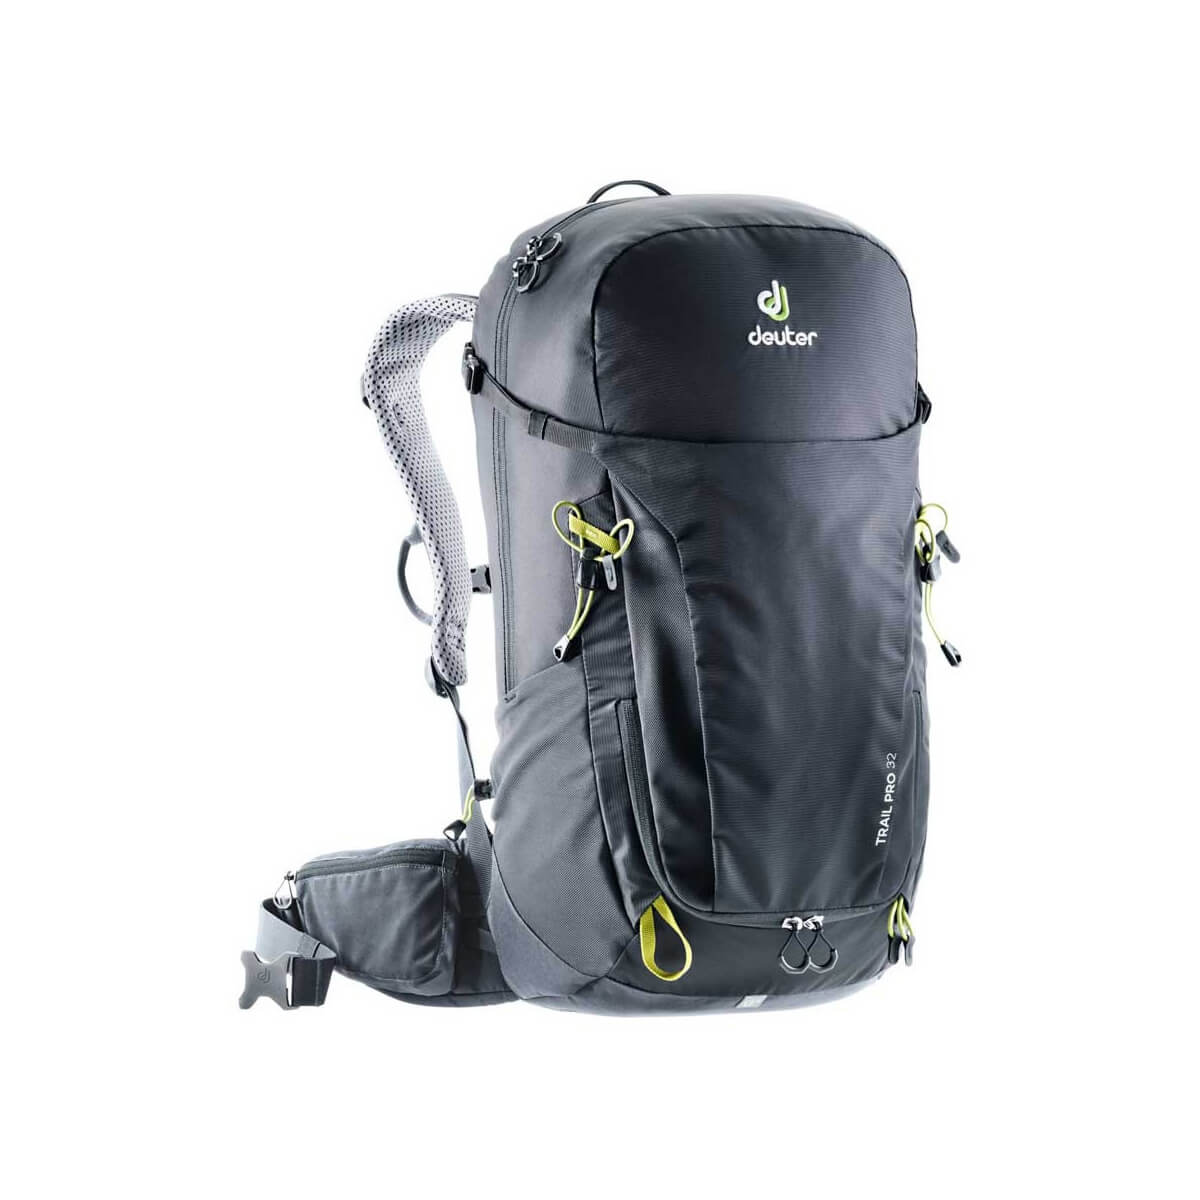 Trail Pro 32black-graphite